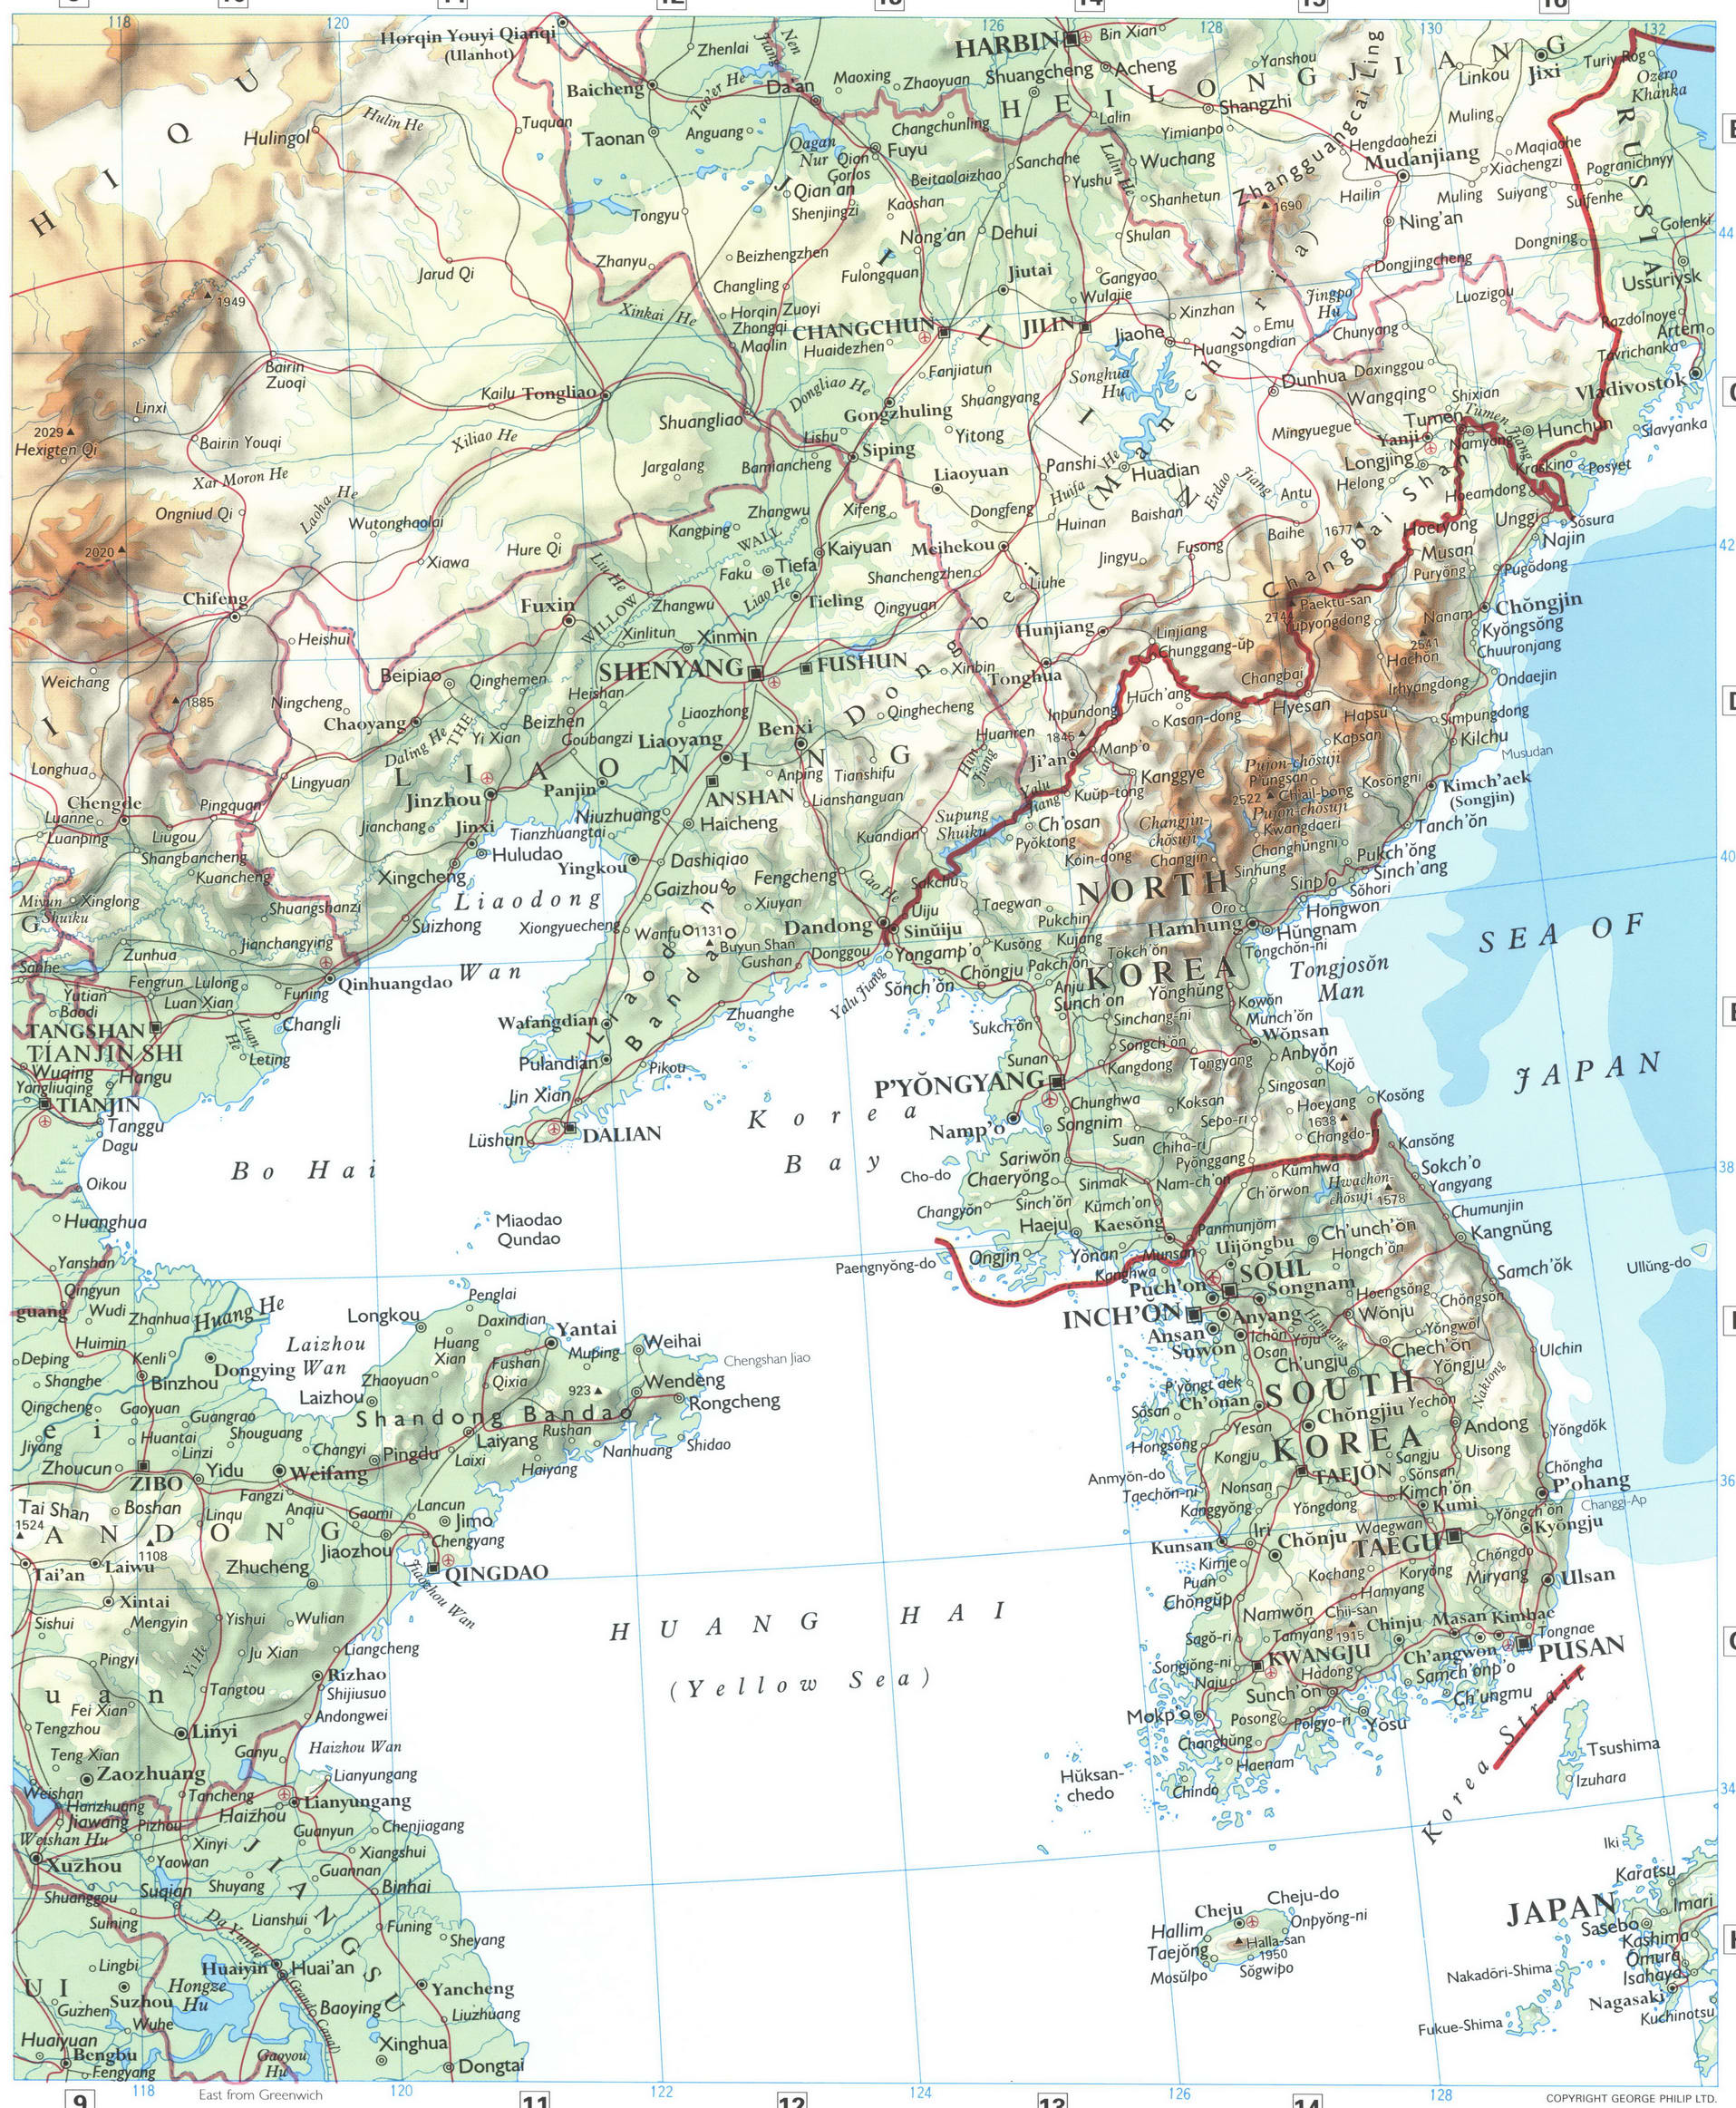 Korea and Northern China physical map